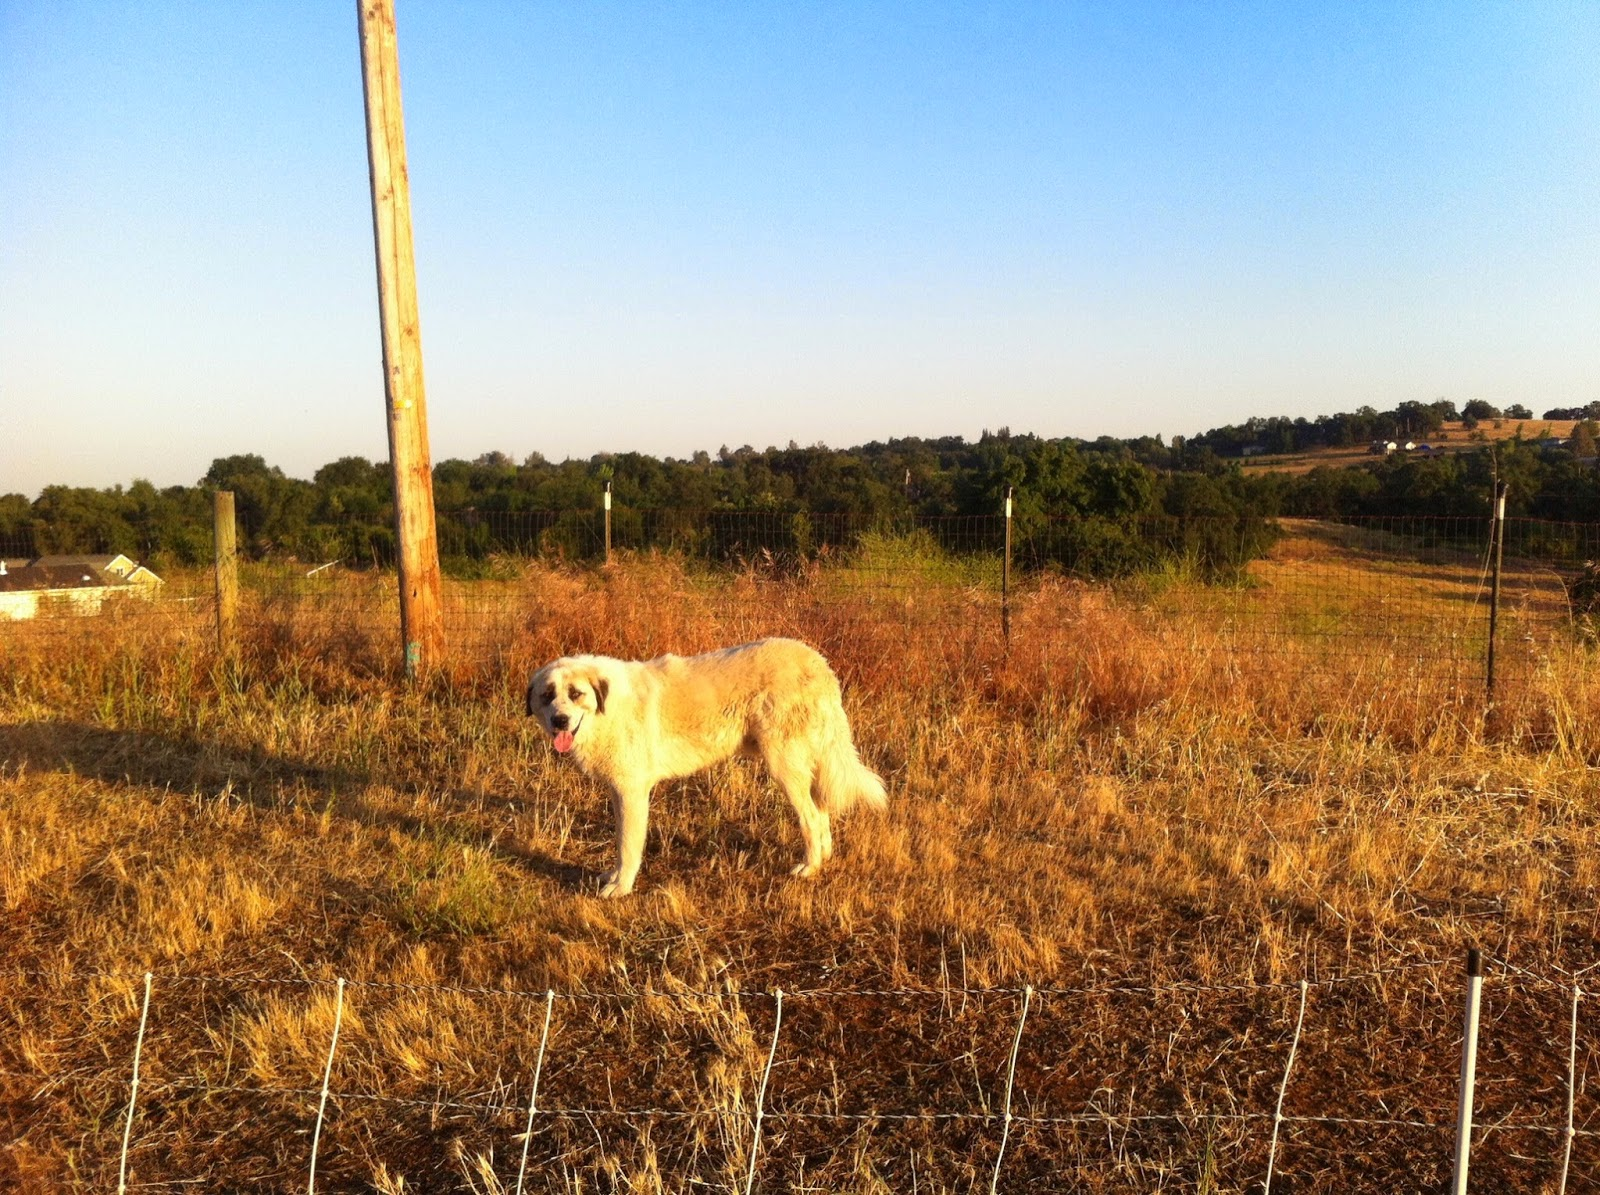 Using Livestock Guardian Dogs in a Small-Scale Commercial Sheep Operation: One Ranch's Approach